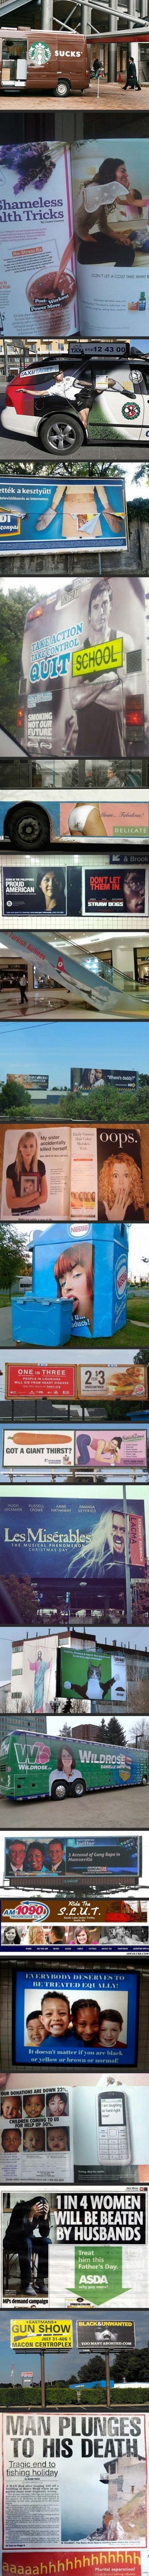 funny-picture-advertising-perfect-timing